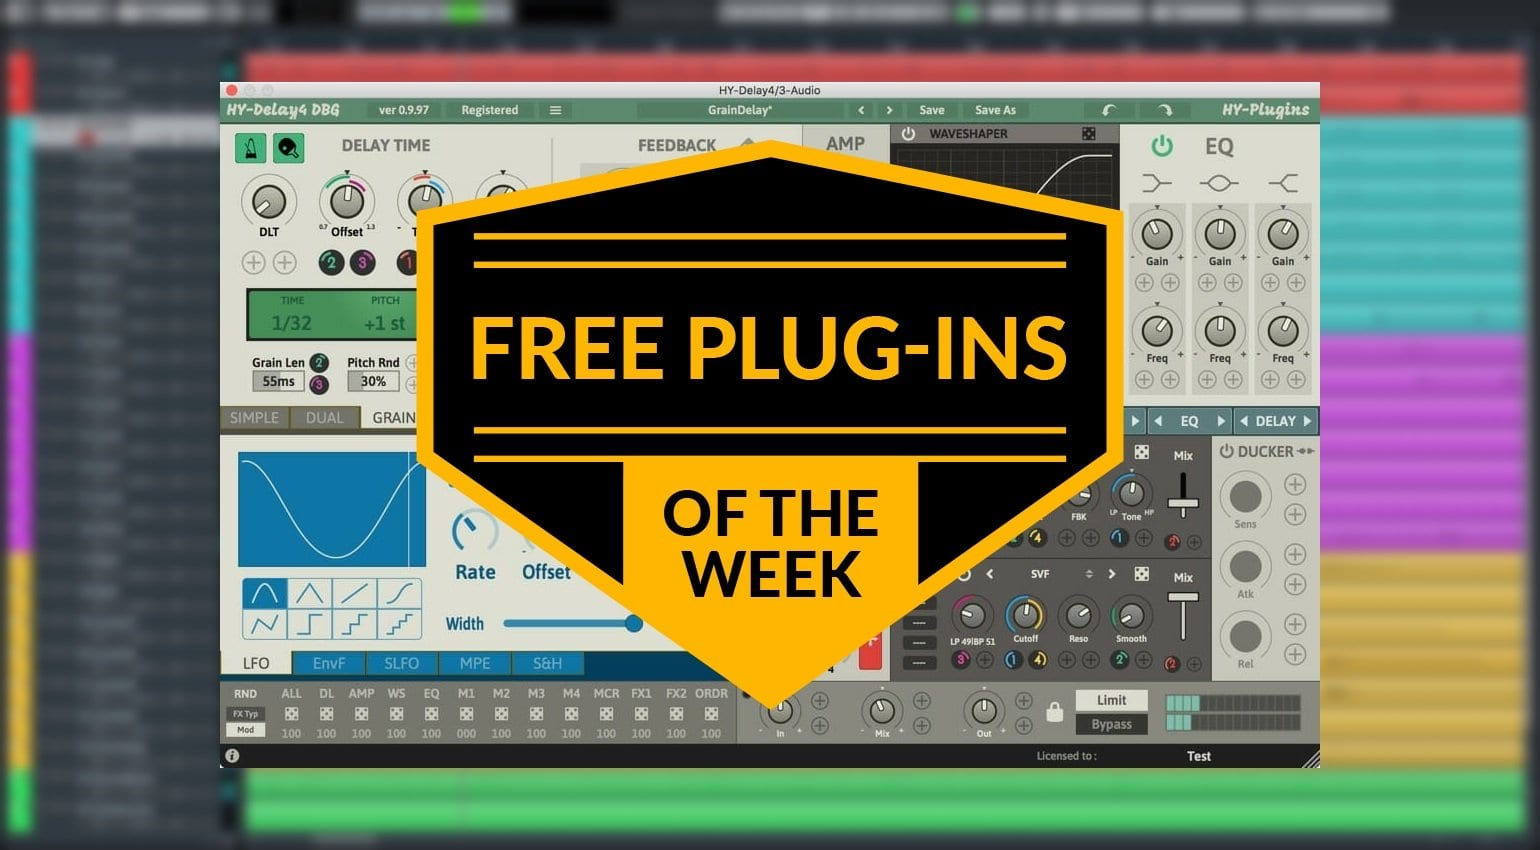 Best free plug-ins this week: Four awesome toys for your musical